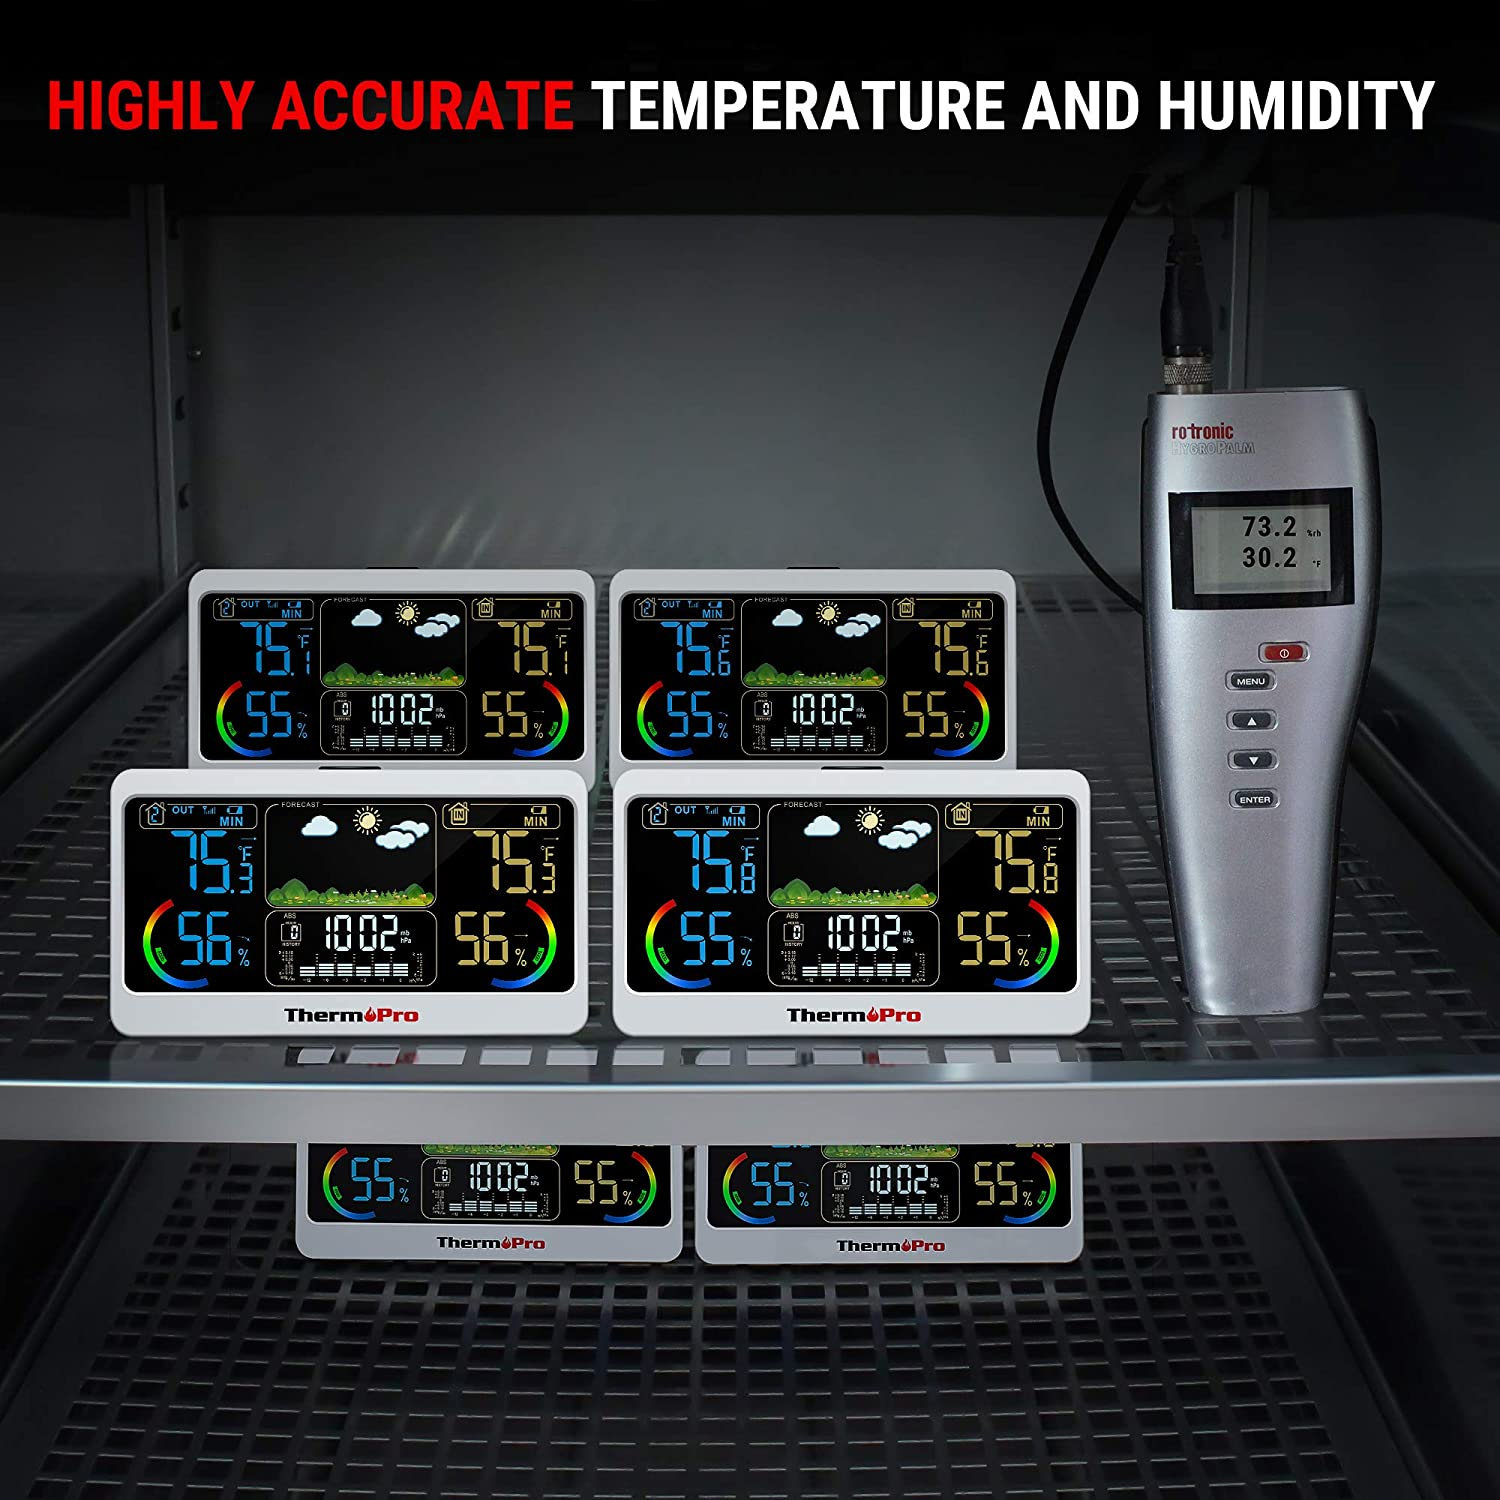 ThermoPro TP68B 500ft Weather Station Indoor Outdoor Thermometer Wireless Hygrometer Barometer Weather Forecast with 7 Large Color LCD Screen